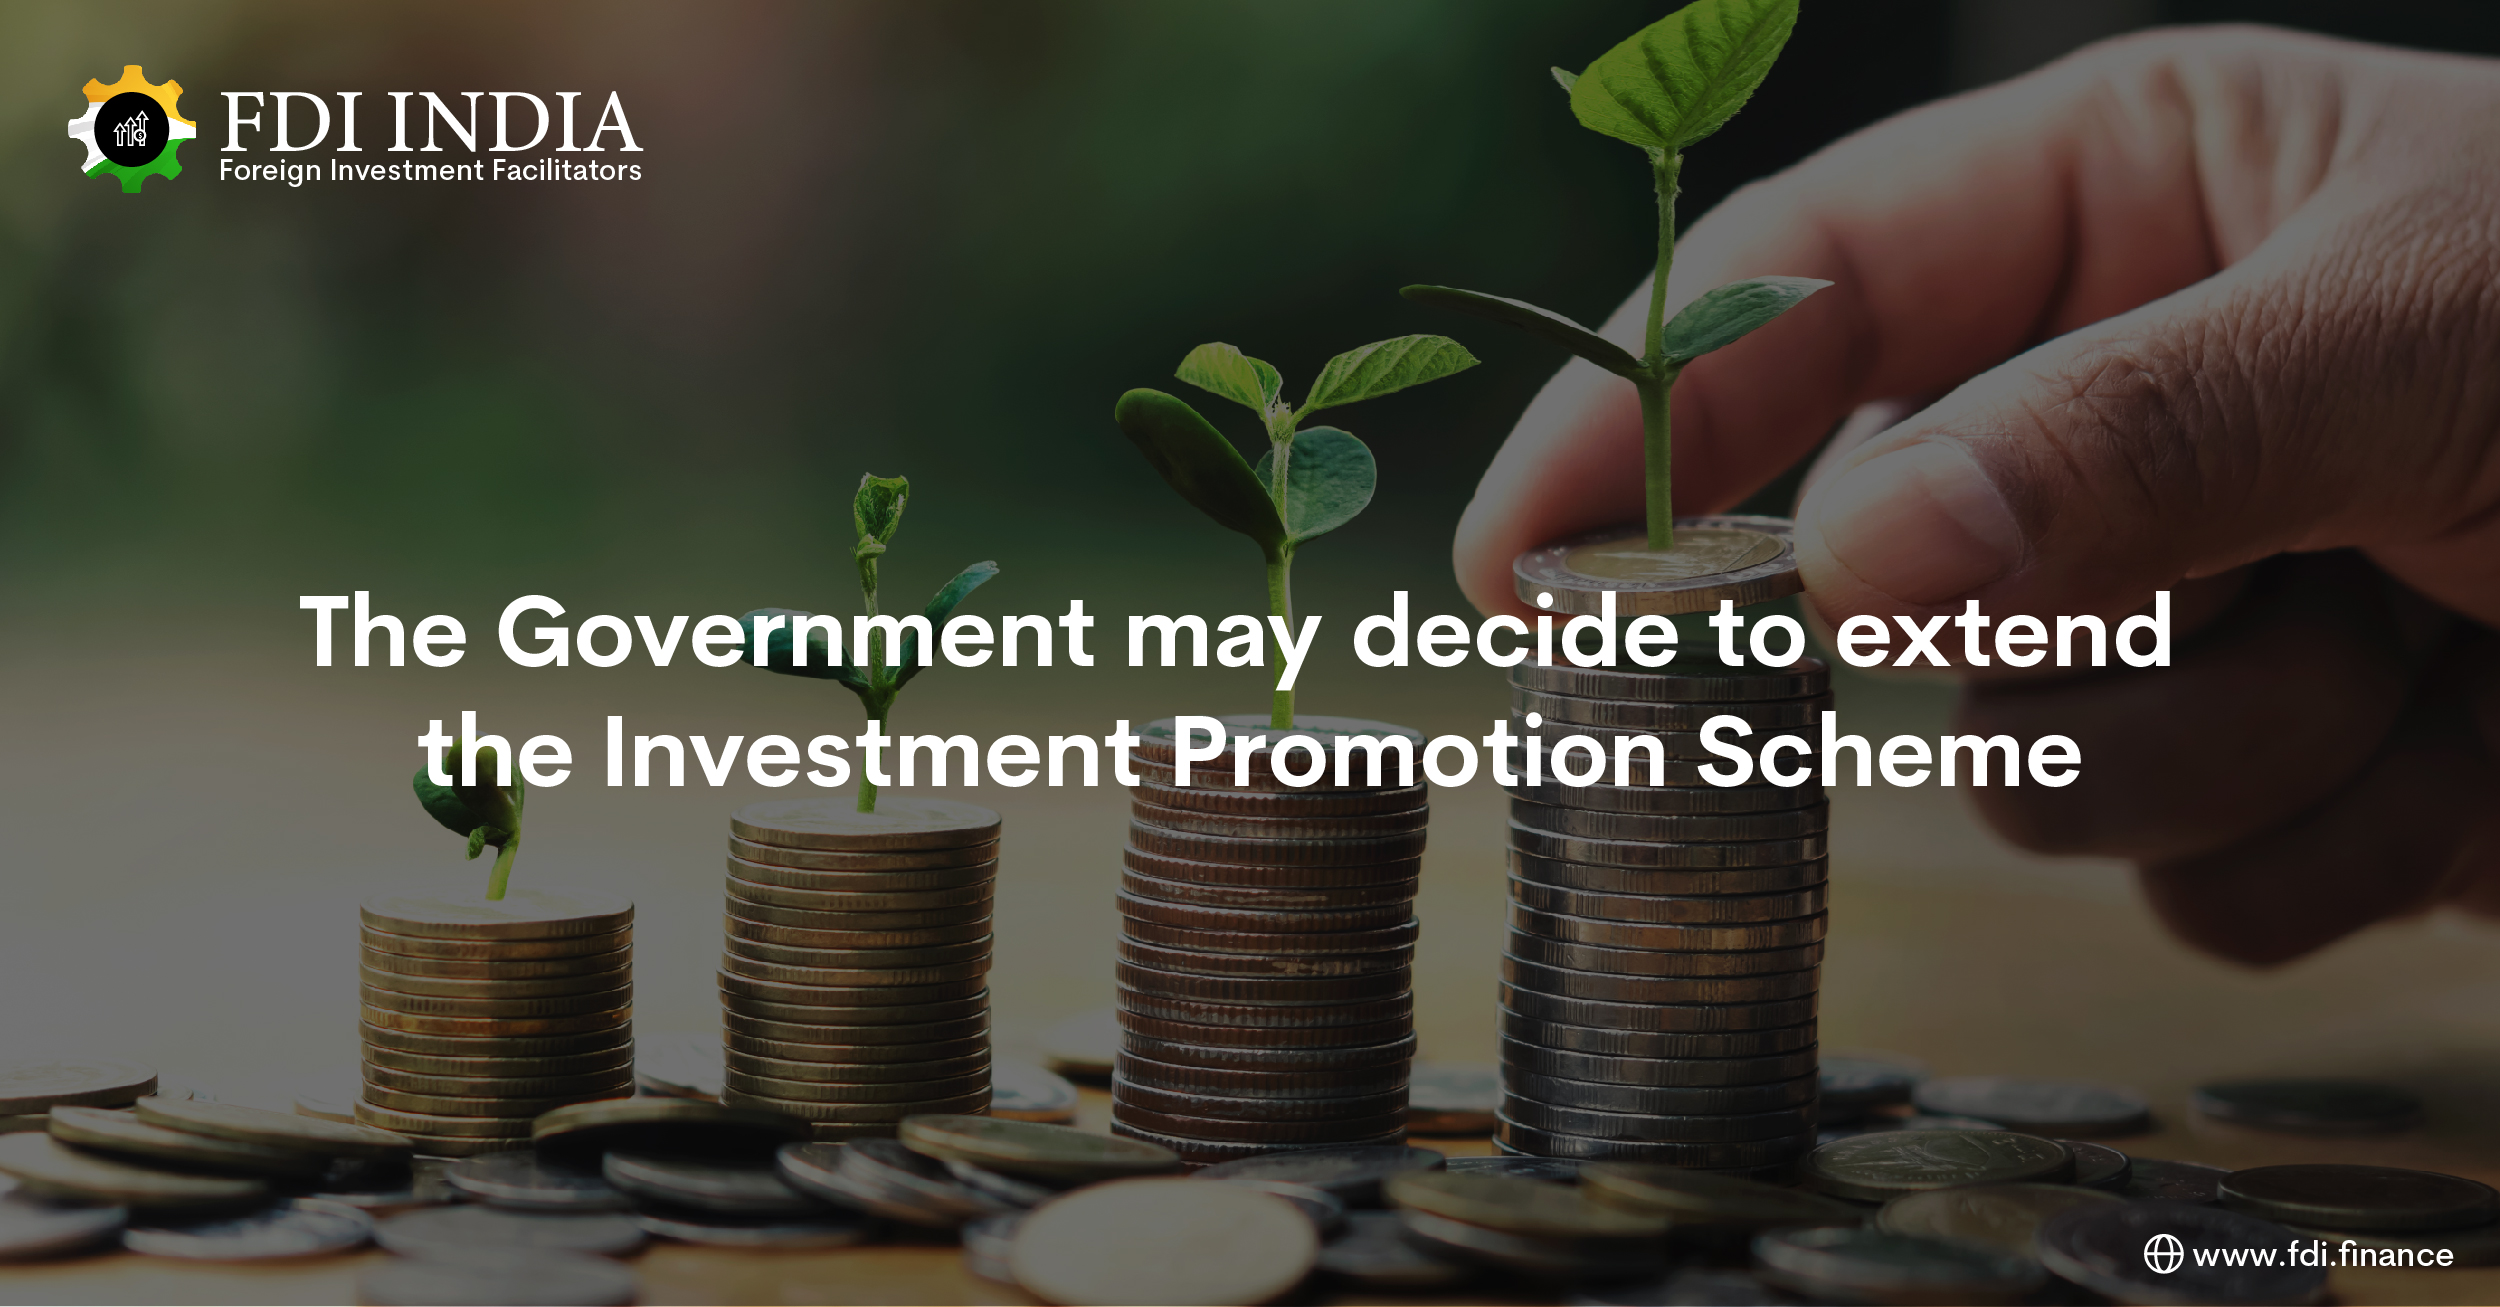 The Government May Decide to Extend the Investment Promotion Scheme